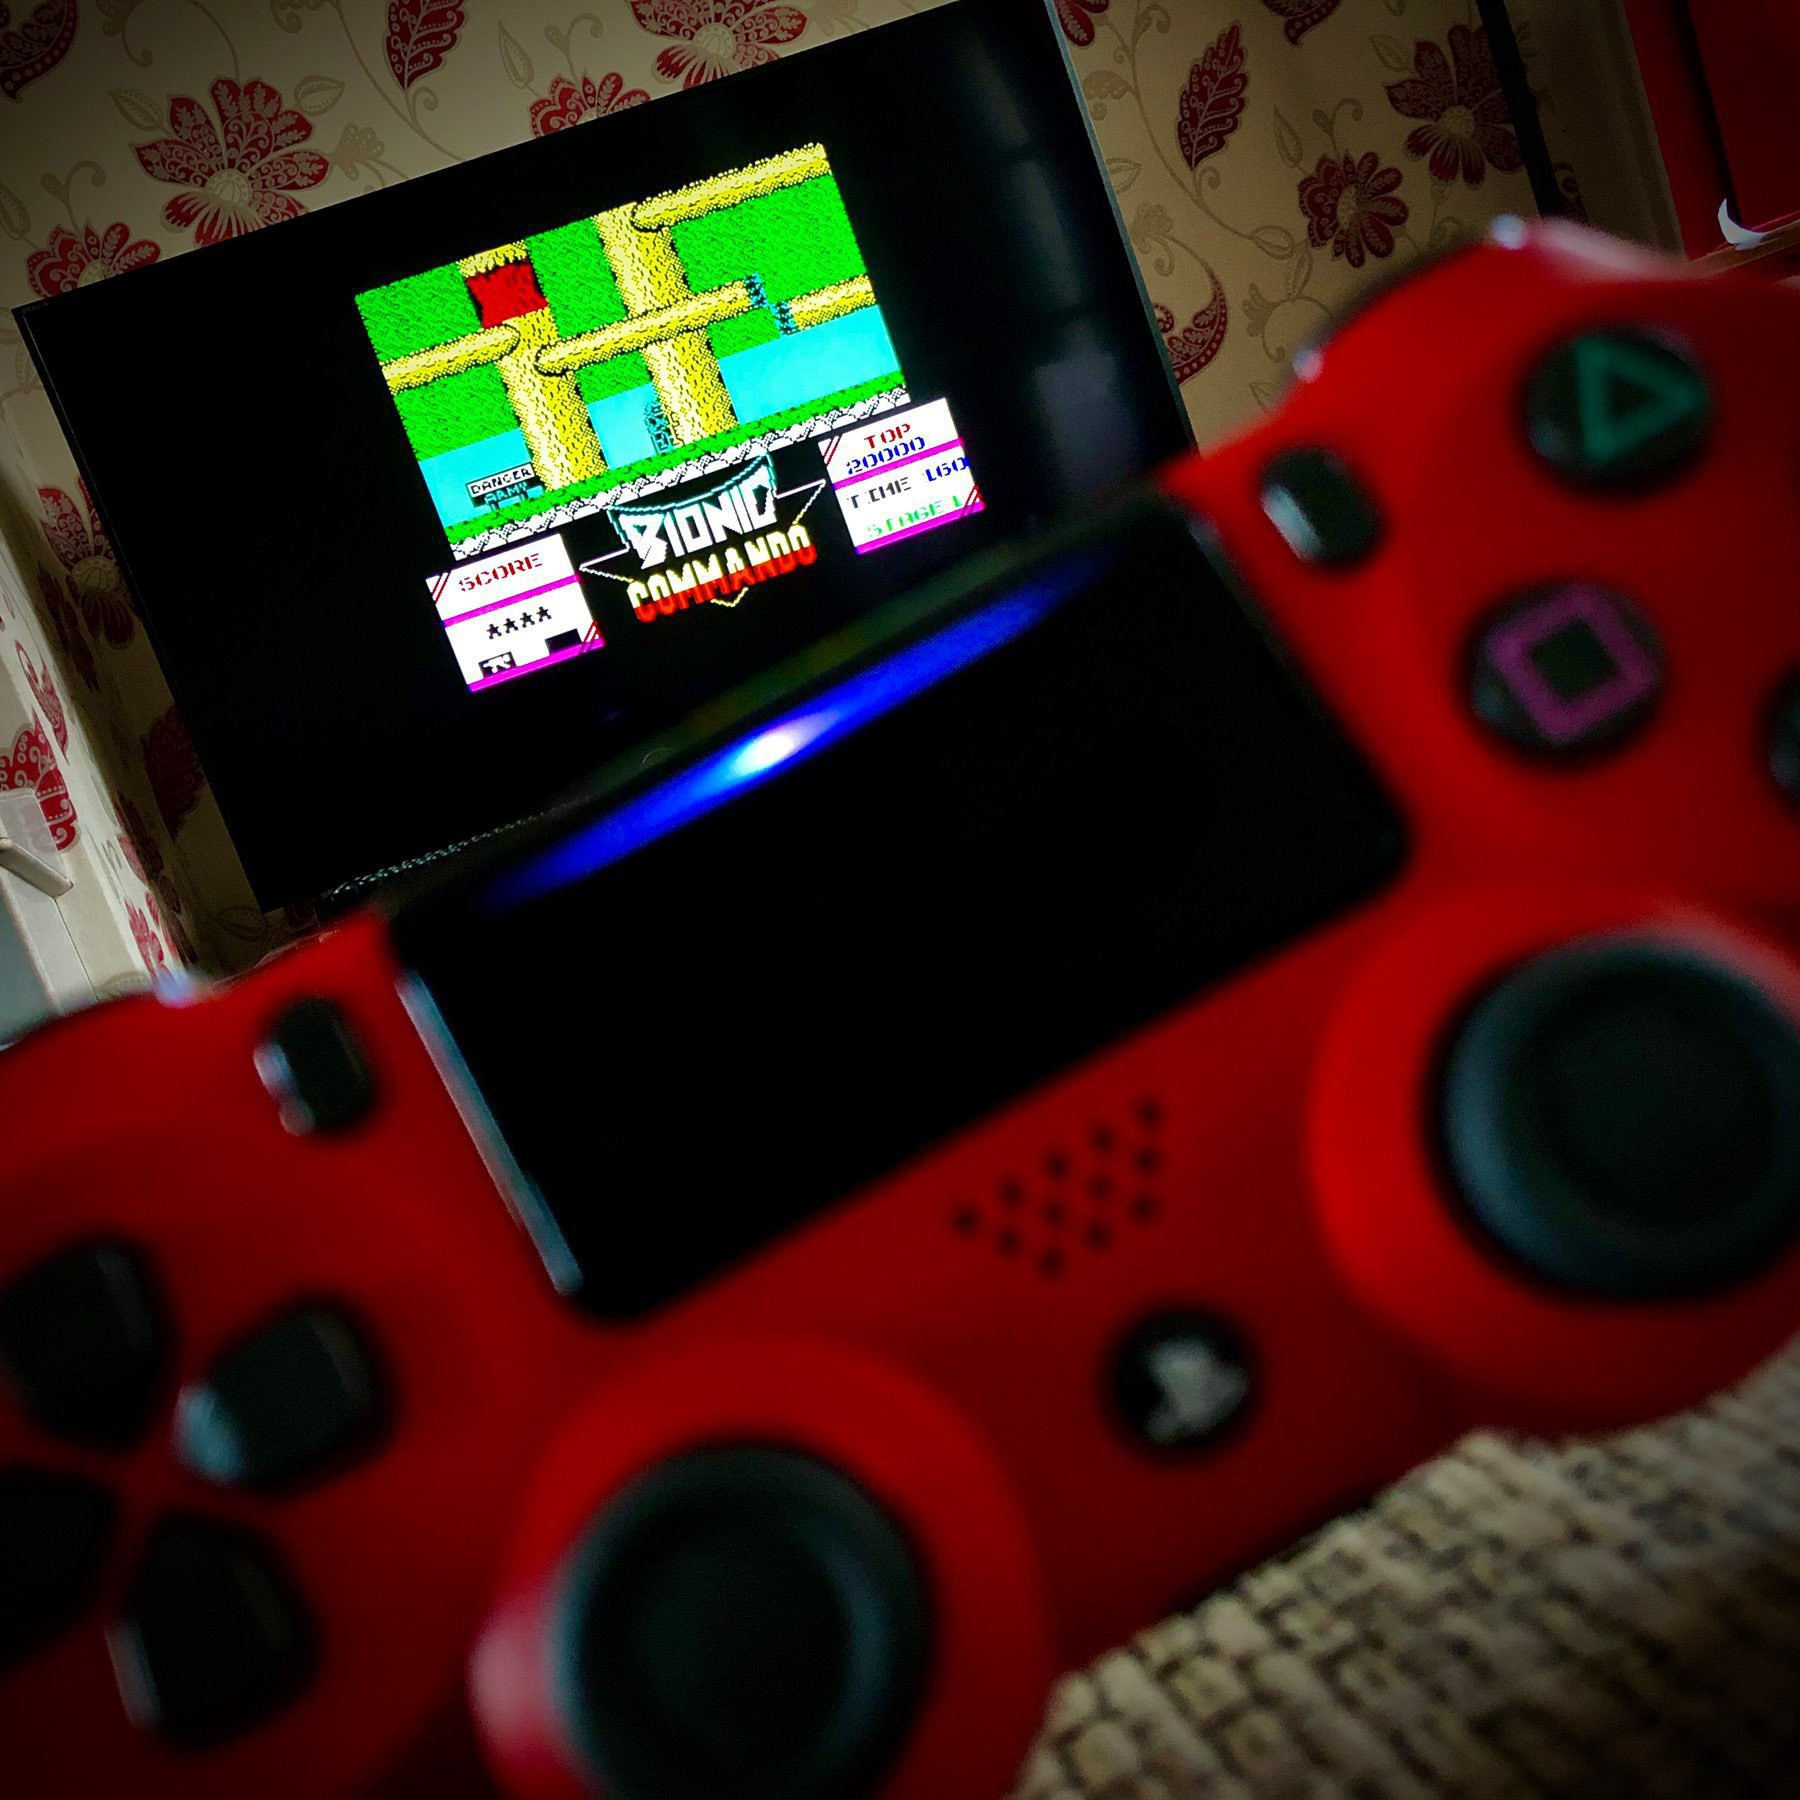 Sony PlayStation Dualshock 4 being used to play Bionic Commando